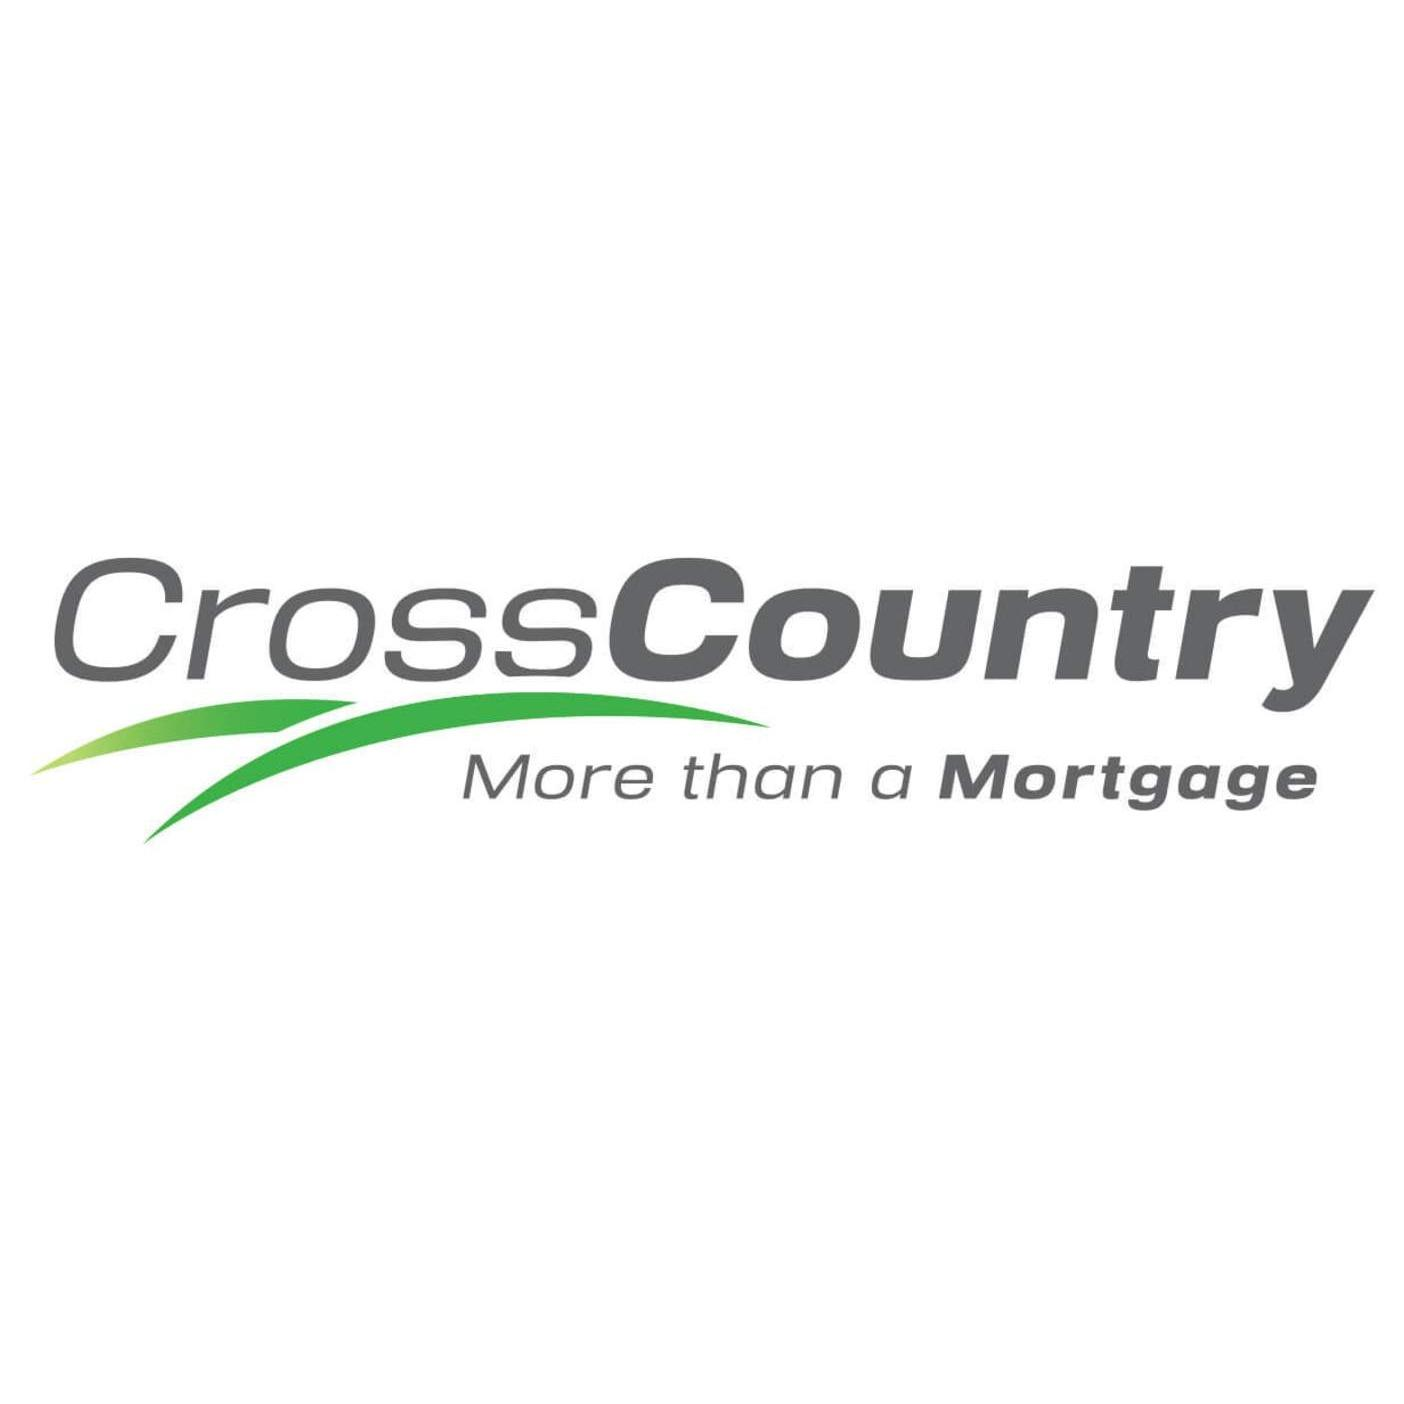 Carson Maples | Cross Country Mortgage image 1